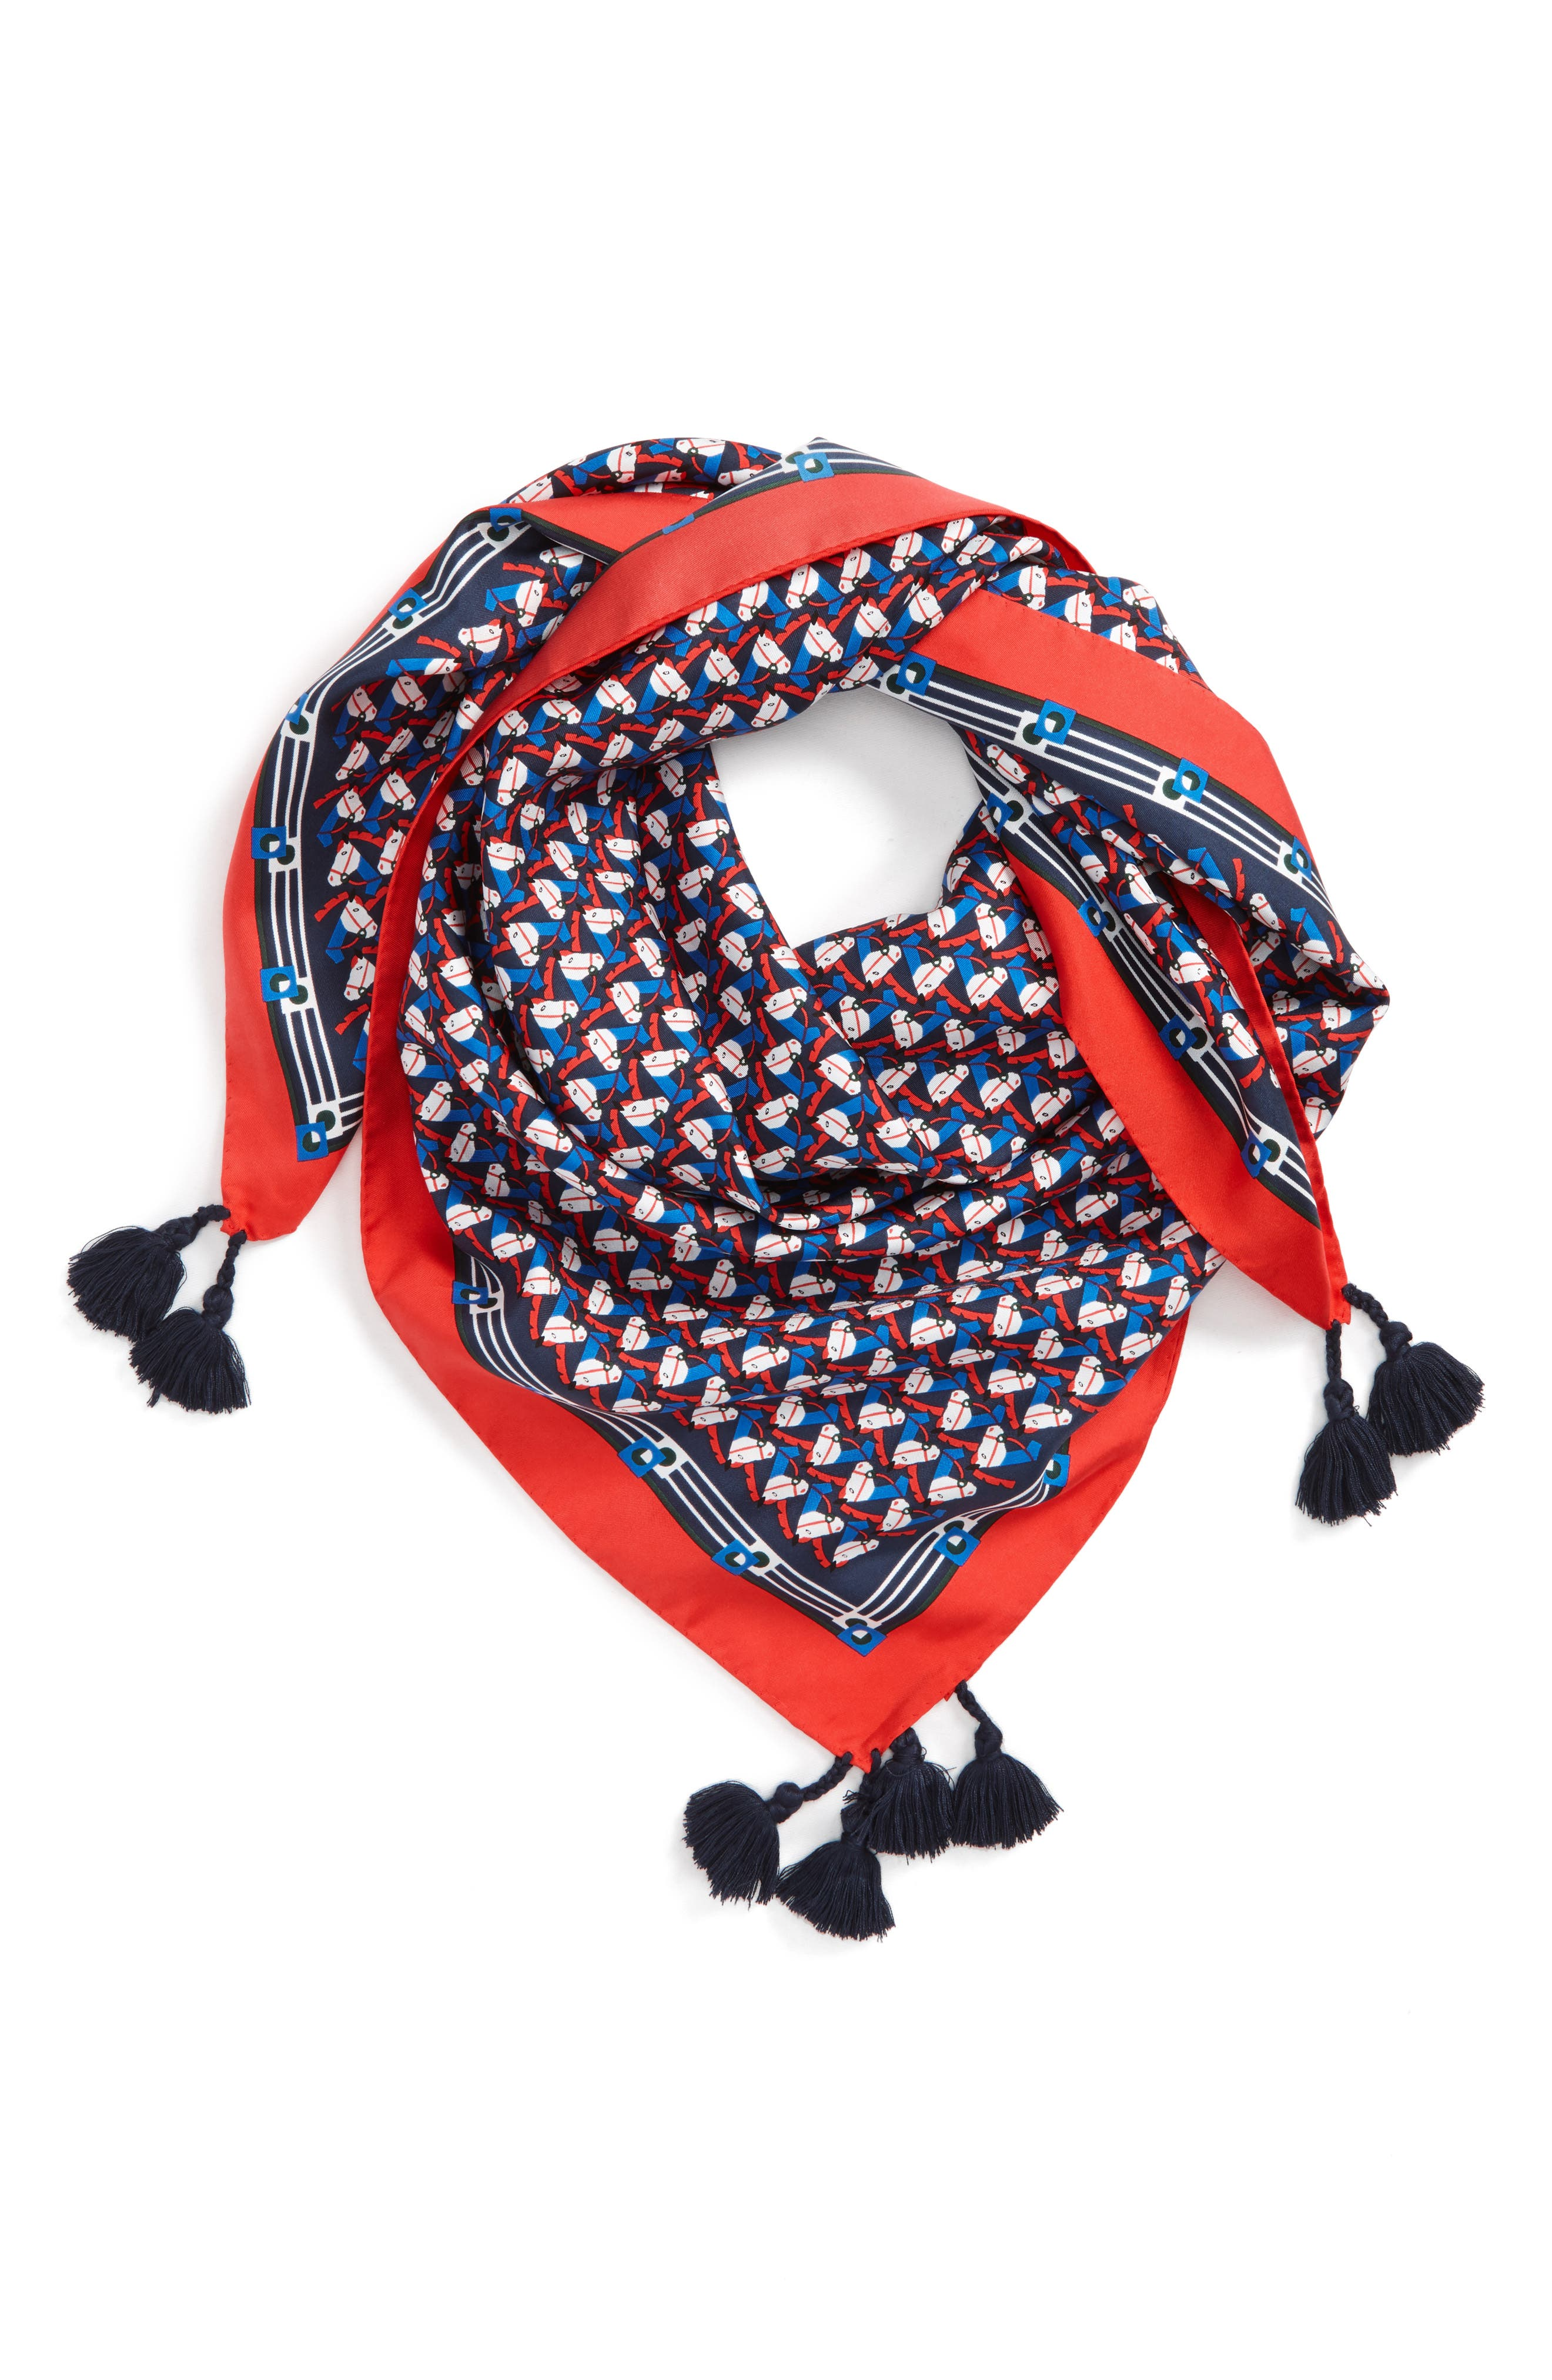 Stallion Silk Square Scarf with Tassels,                             Main thumbnail 1, color,